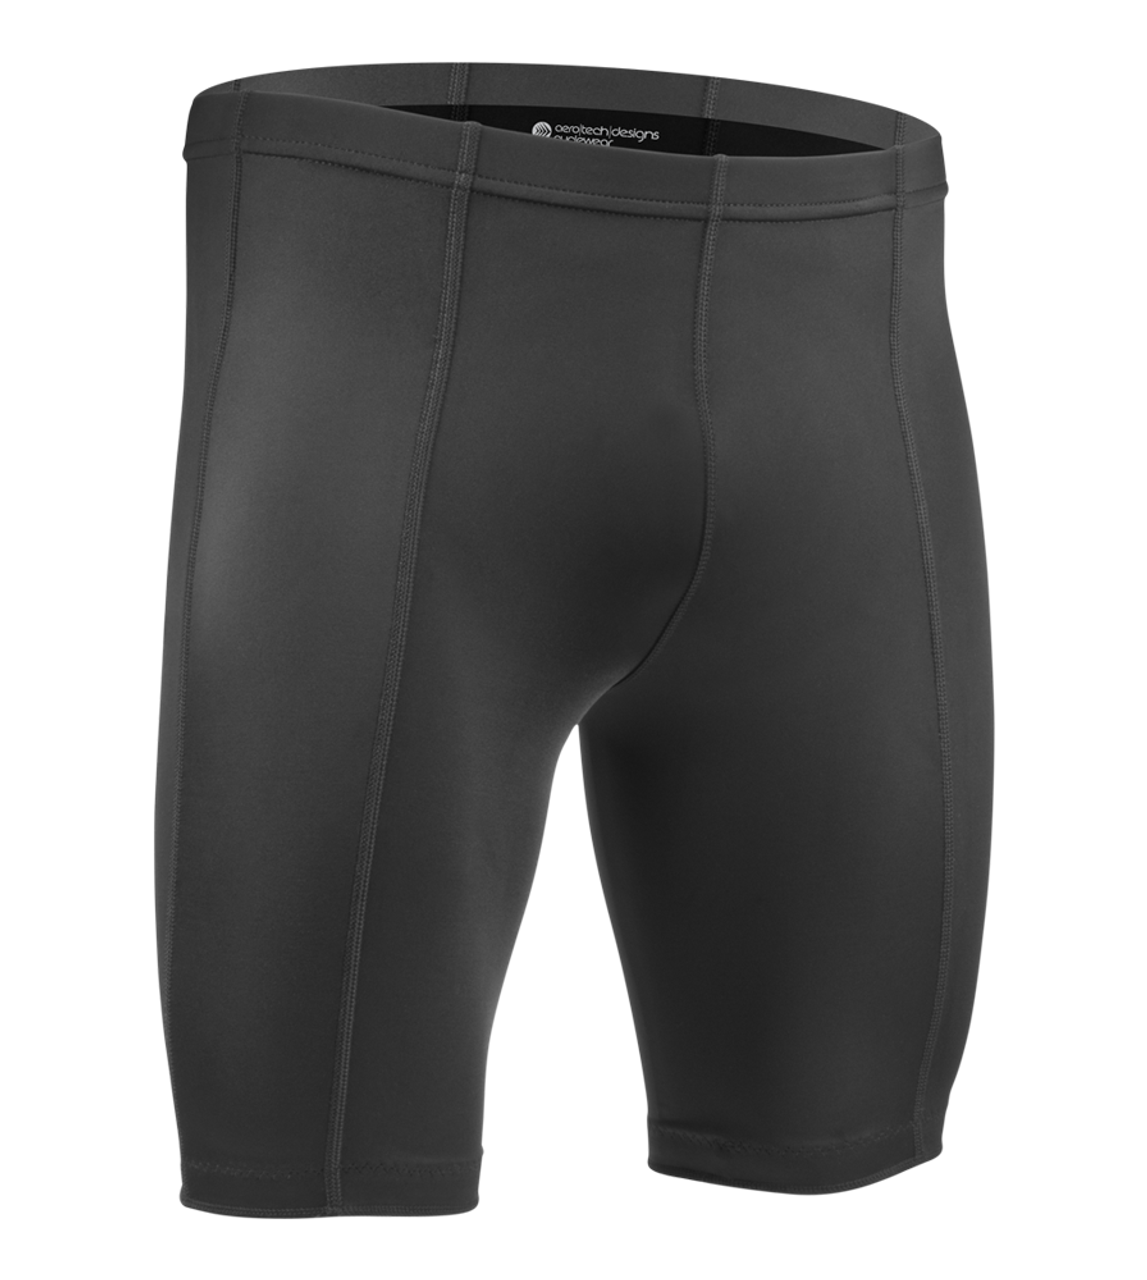 Womens Cycling Shorts with Padding Bicycle Clothing Compression Bike Half Pants